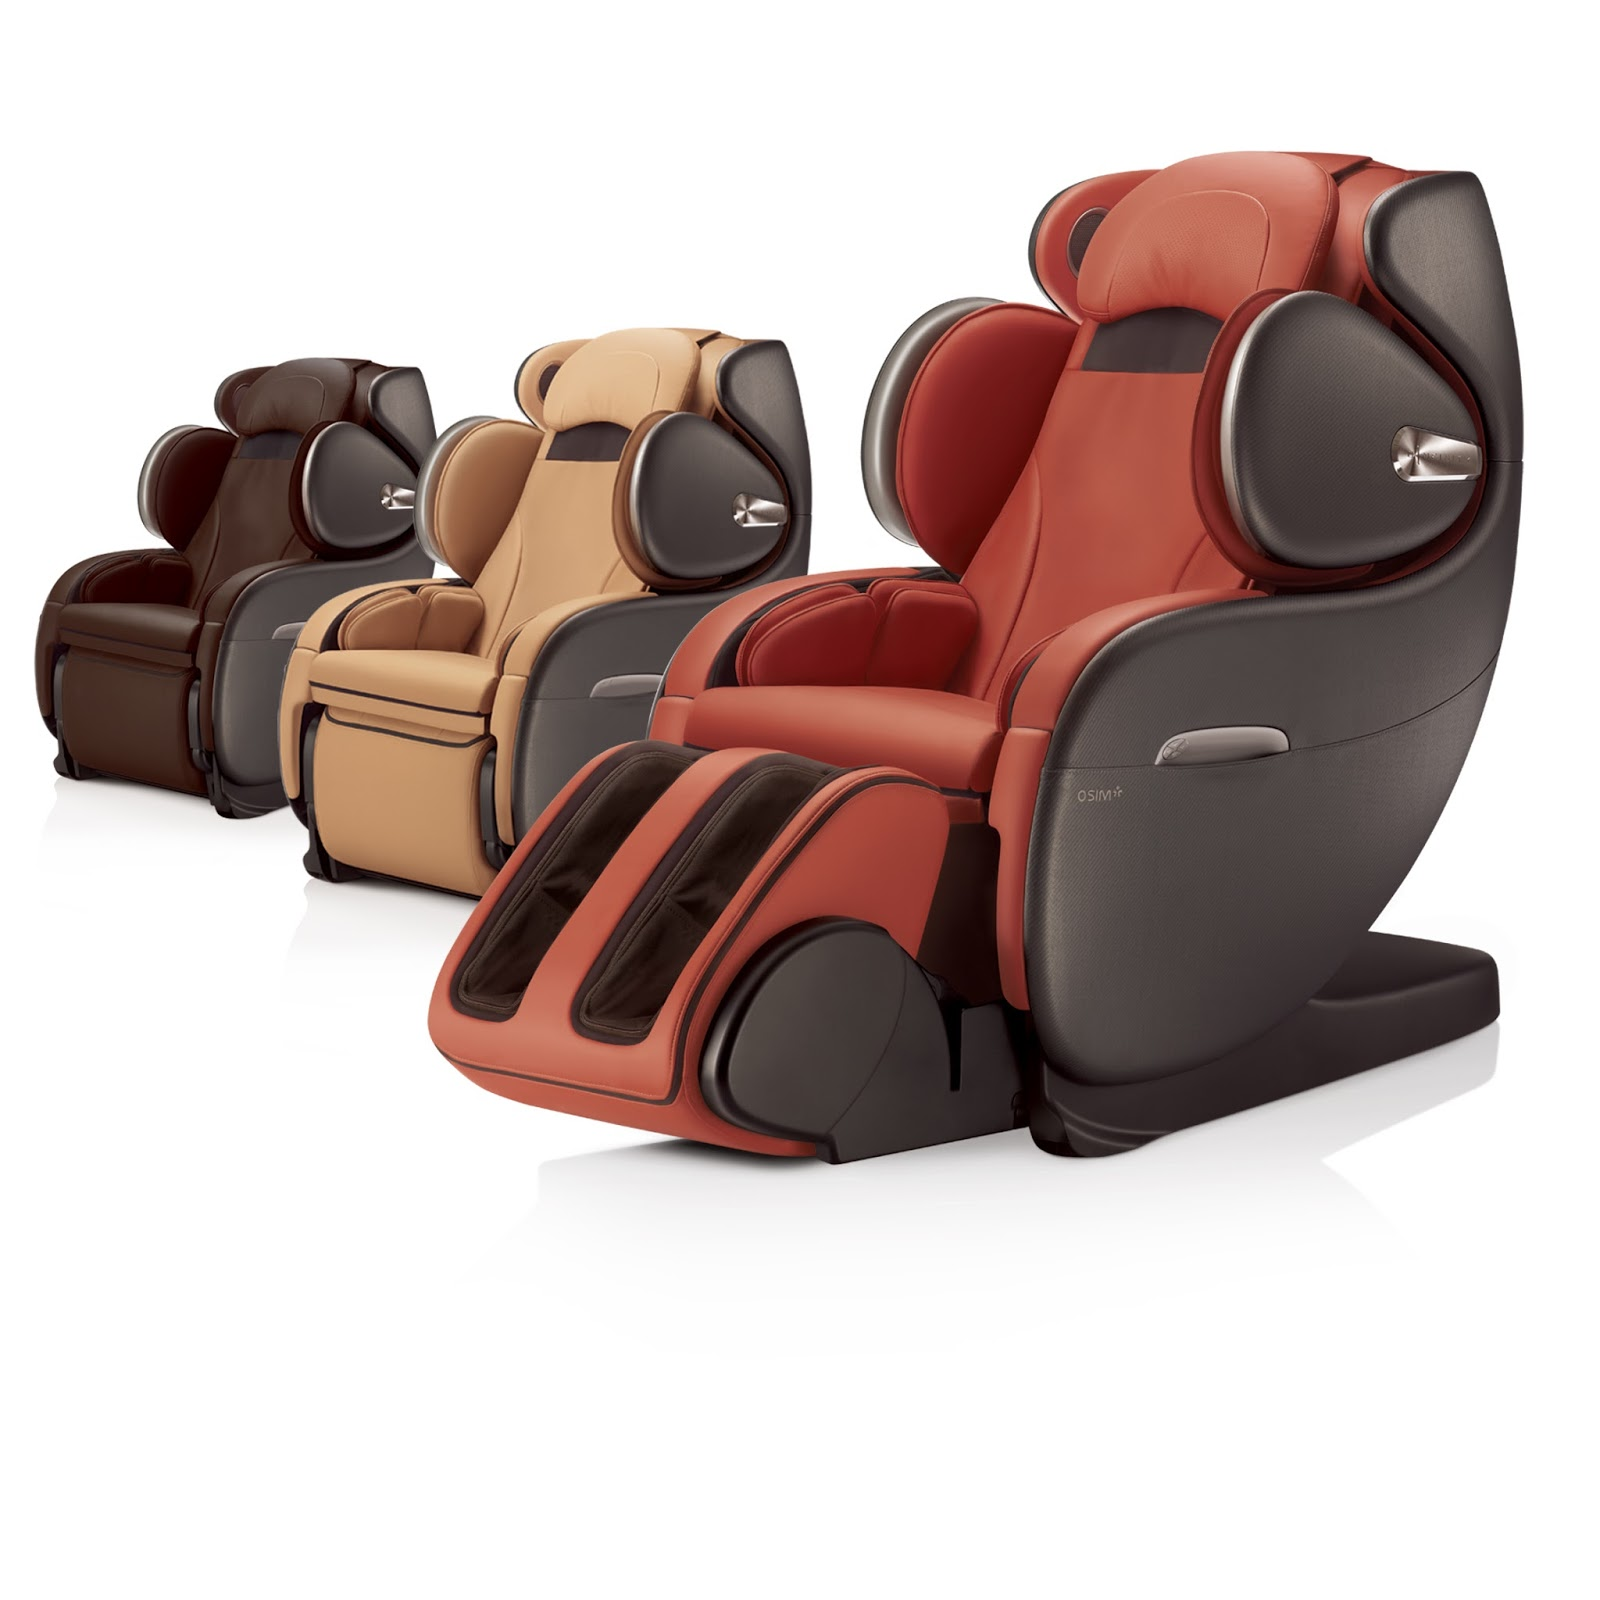 Infinite ways to relax your body OSIM brings uInfinity Lifestyle